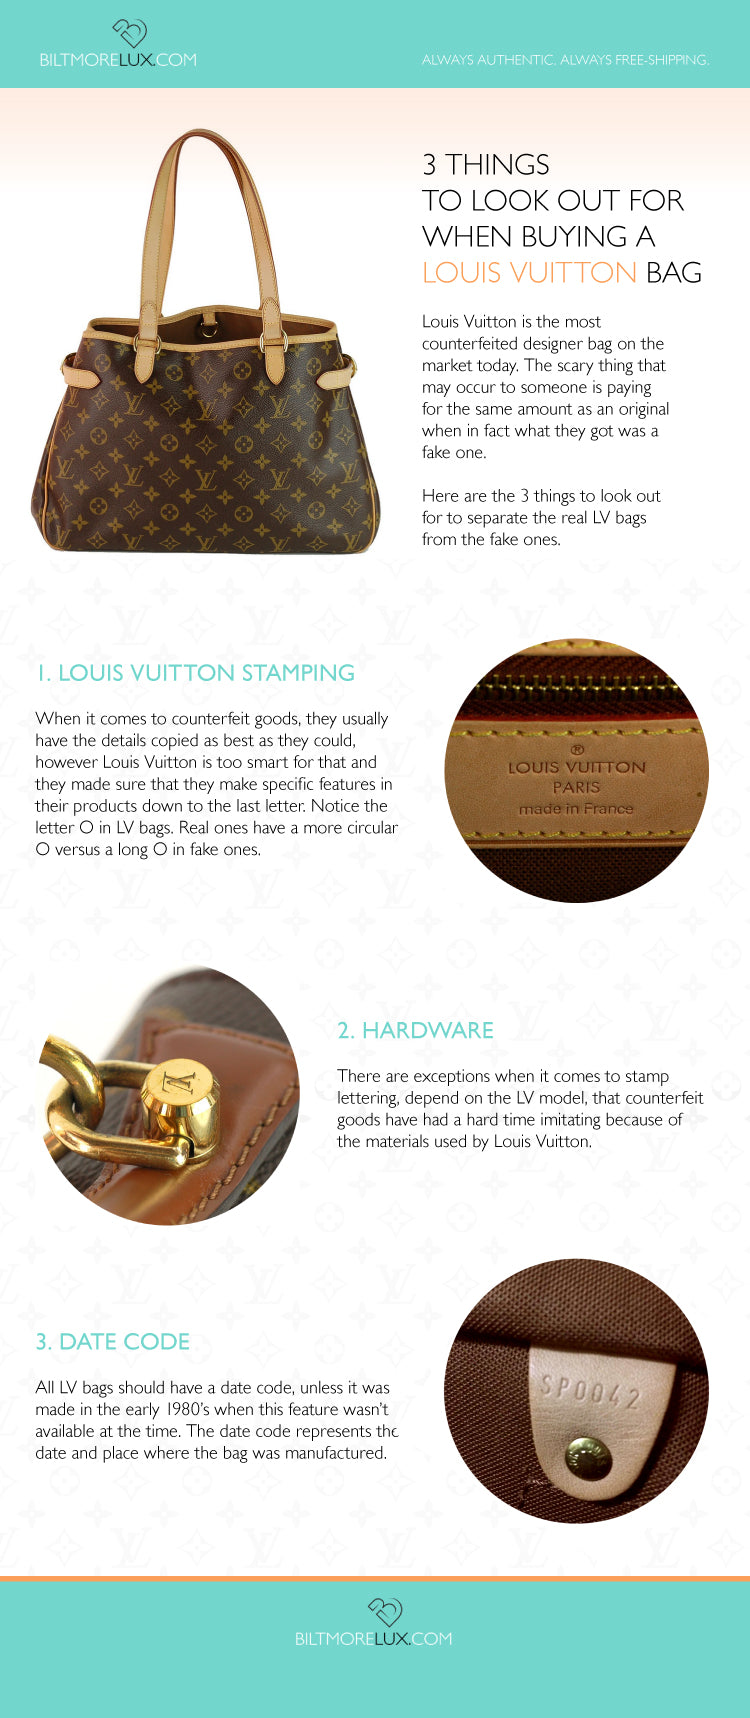 3 Things to Look Out For When Buying A Louis Vuitton Bag – Infographic